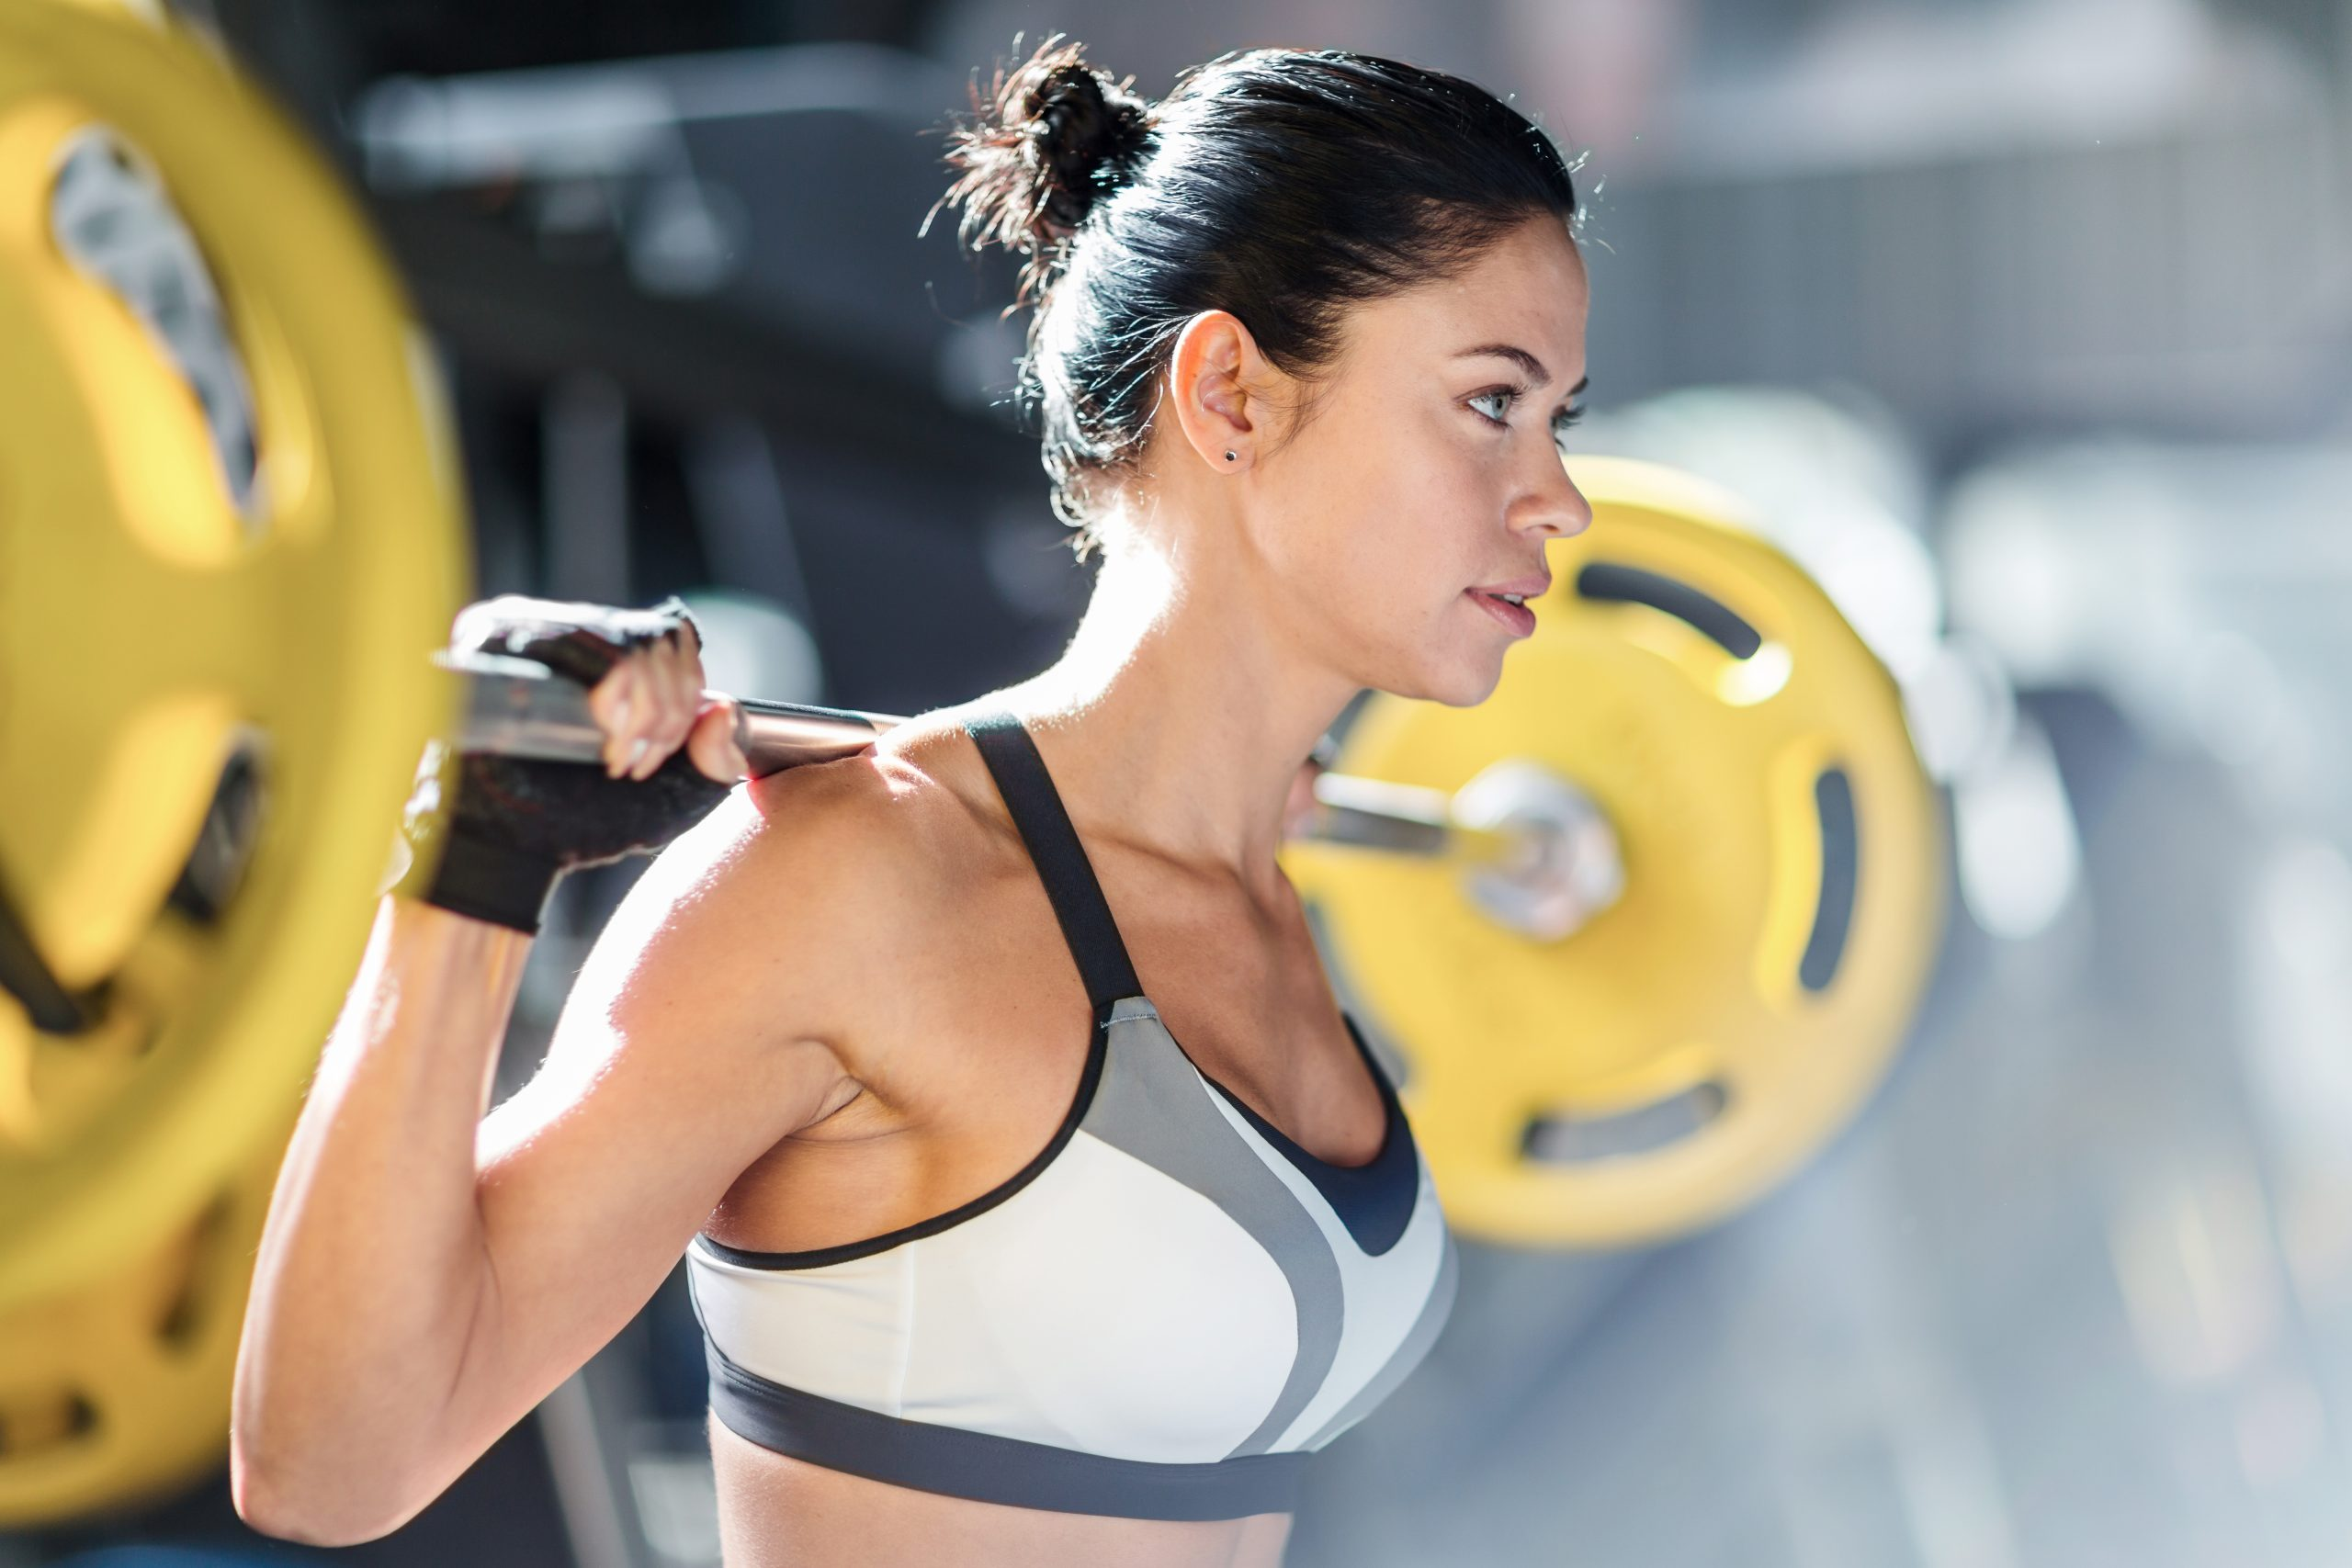 Why You Should Not Wear These 5 Things To The Gym